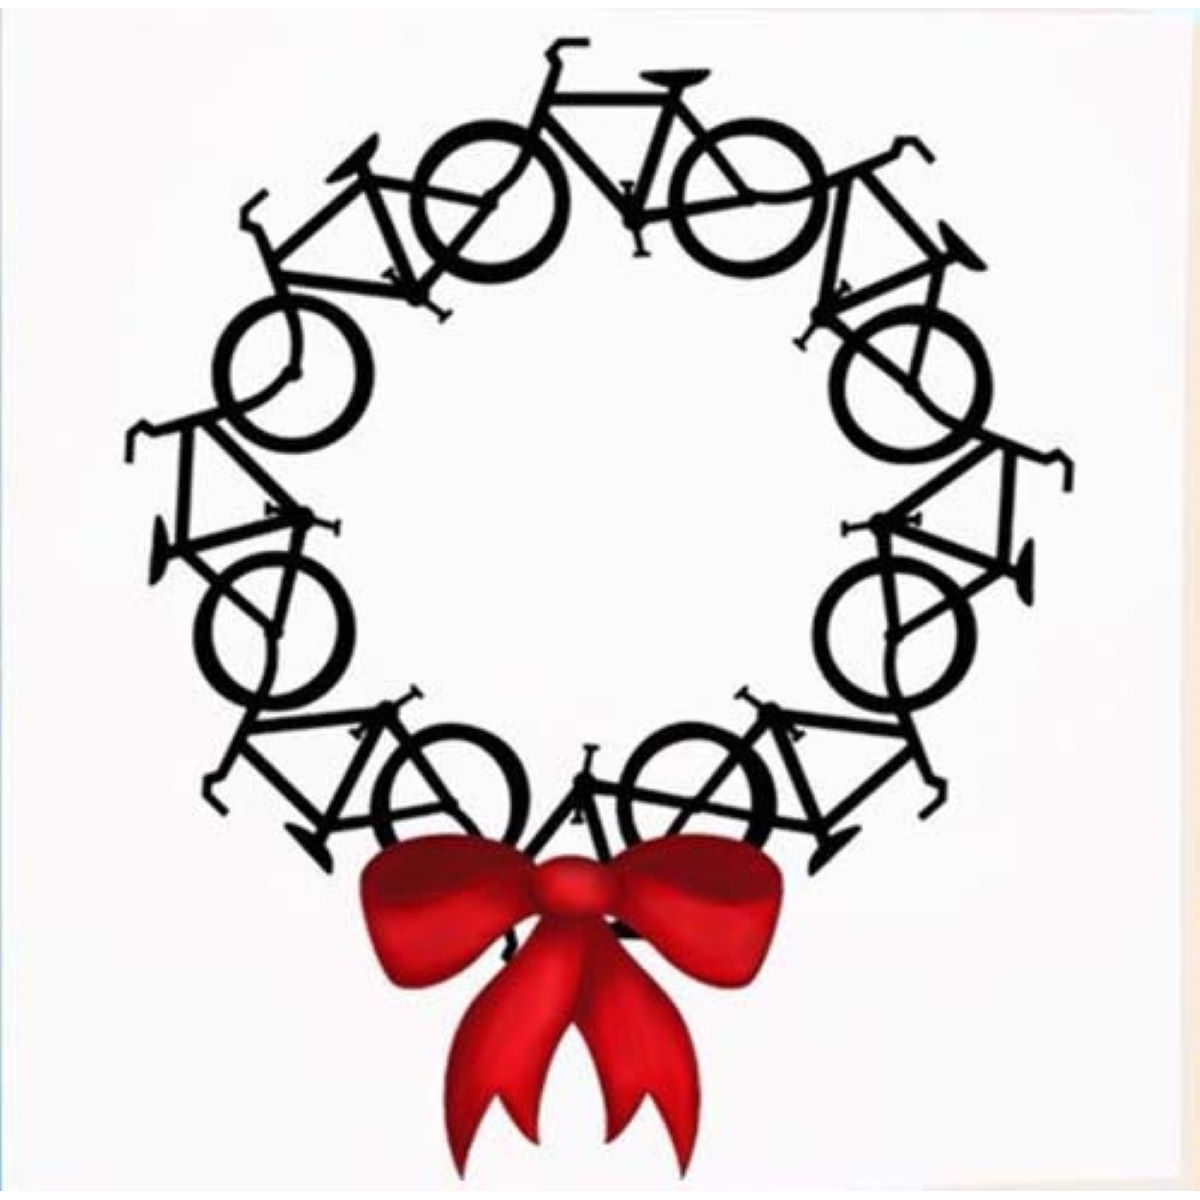 Worry Less Designs Bike Wreath Christmas Card - Regalos